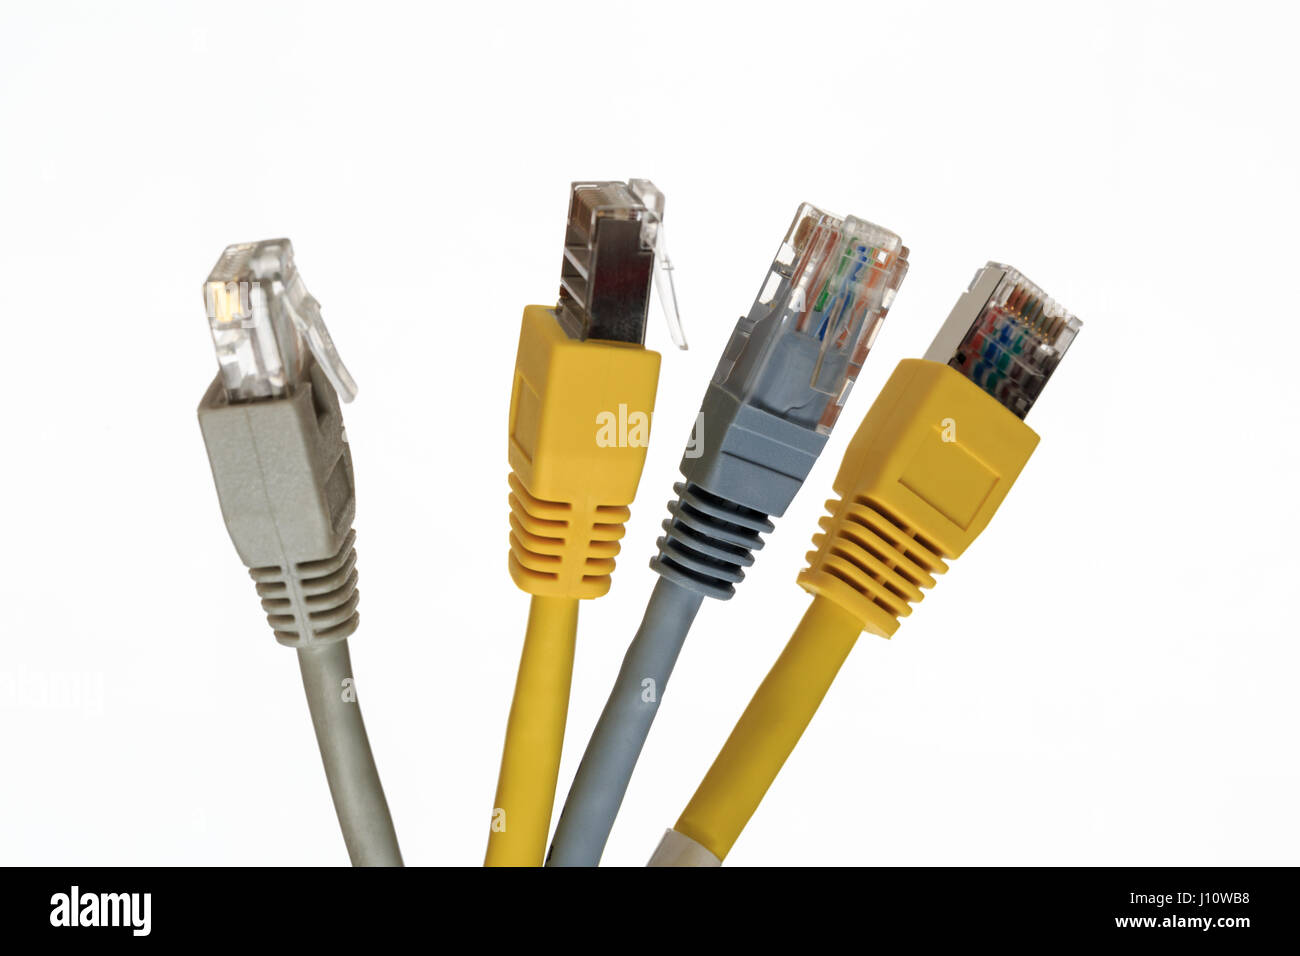 Rj45 Stock Photos Images Alamy Telecom Wiring Diagram Four Telecommunication Cable With Connector Image